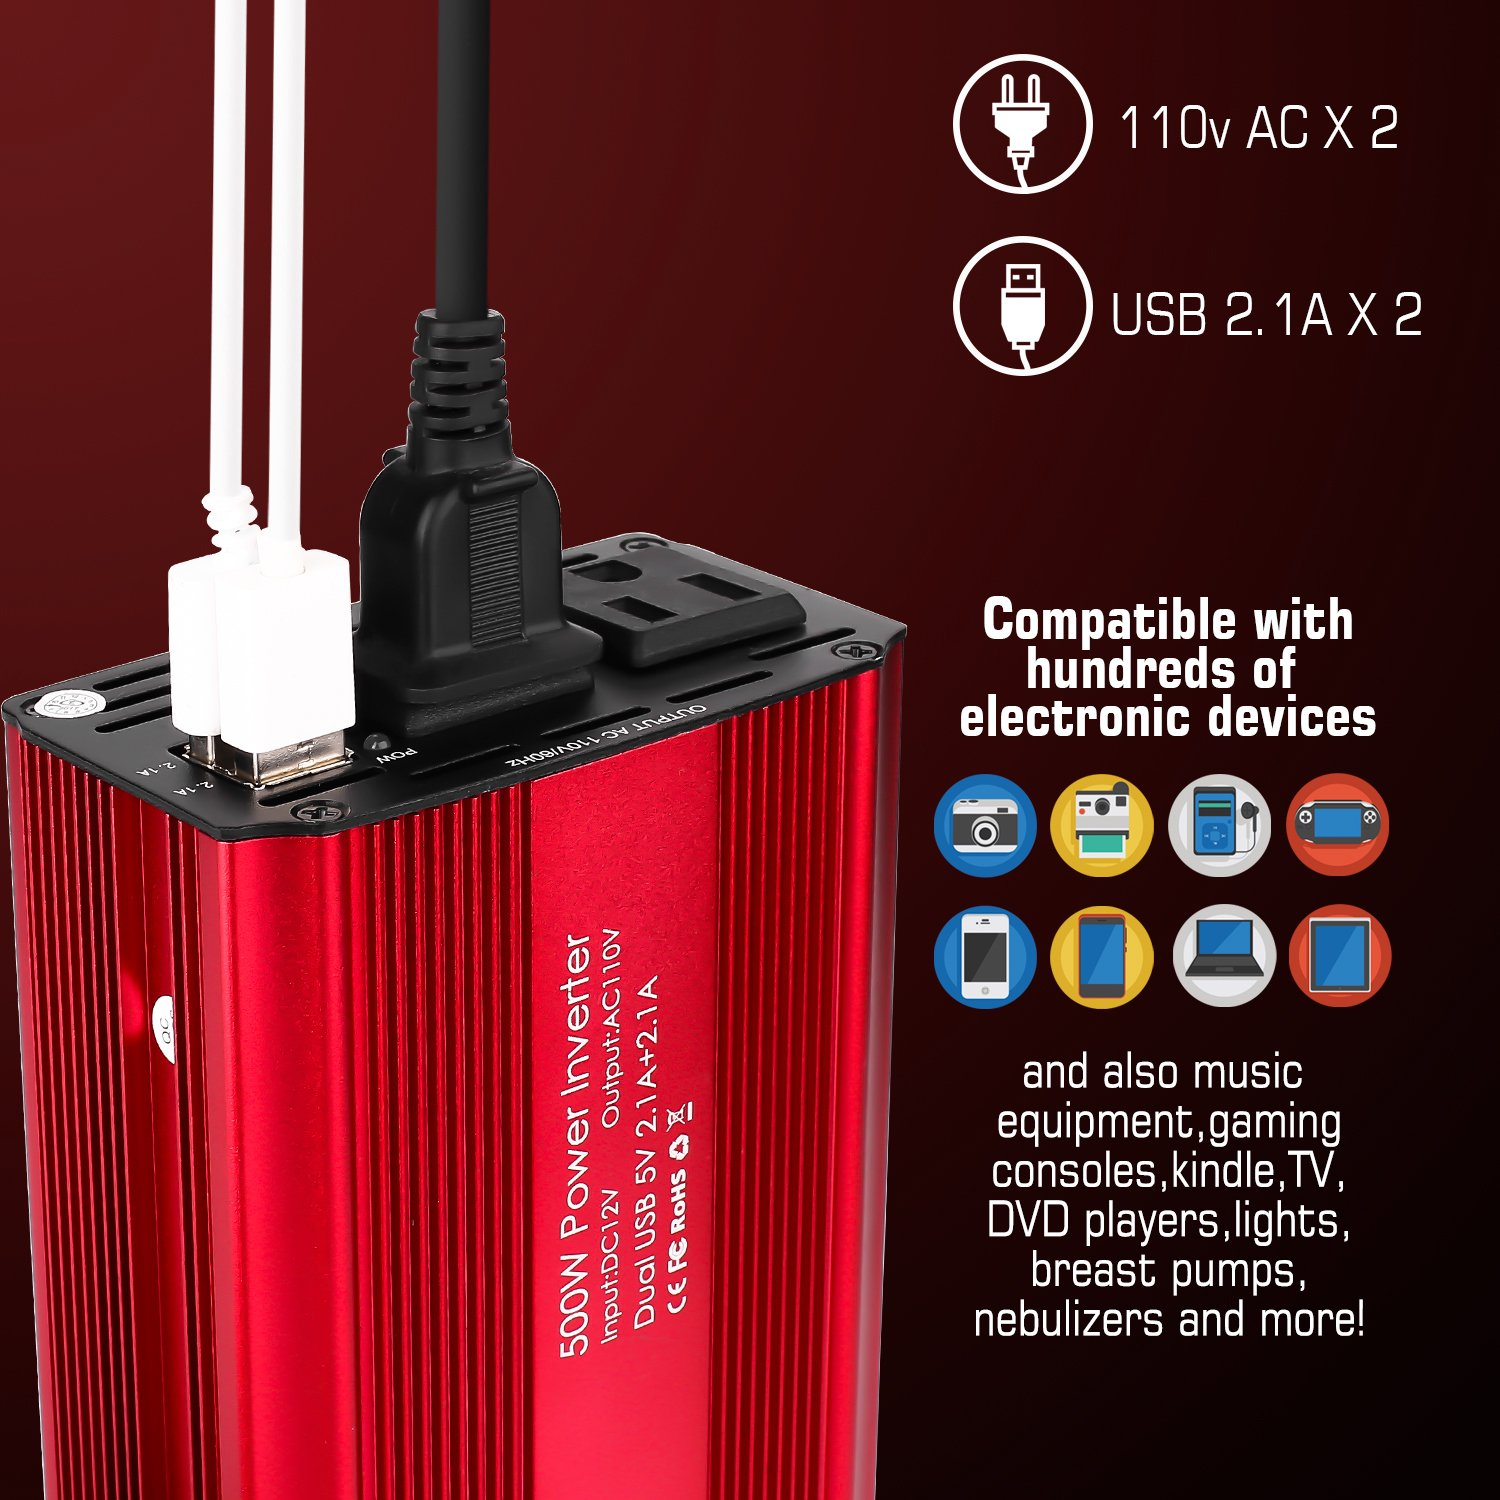 Bapdas 500W Power Inverter Converter DC 12V to AC 110V Car Charger with 4.2A 2 USB Ports Car Power Adapter-Red by Bapdas (Image #2)